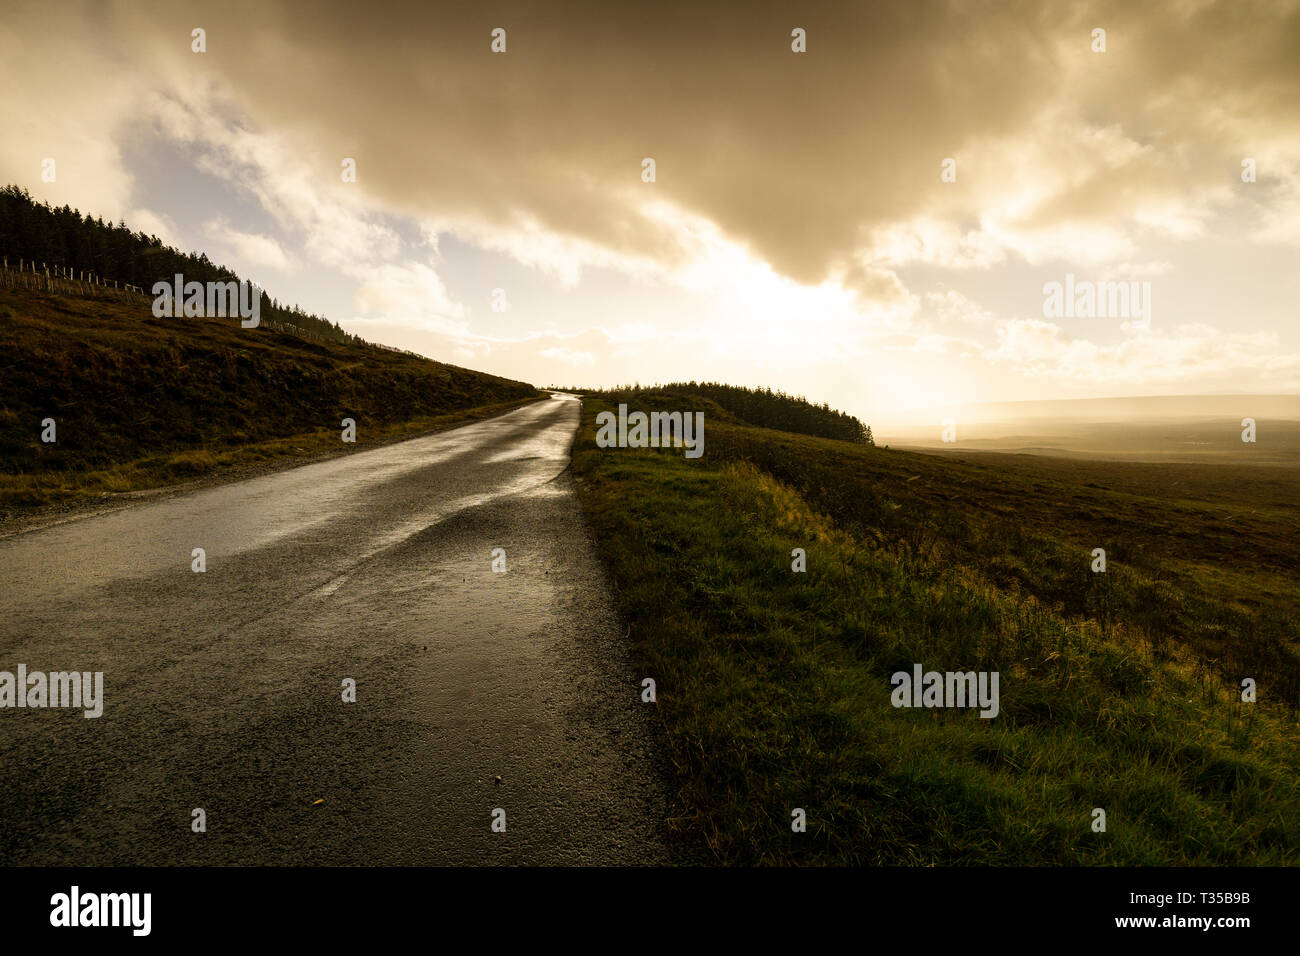 Rain drops, back-lit by the sun, fall on a rain-slicked road in northern Scotland. Stock Photo